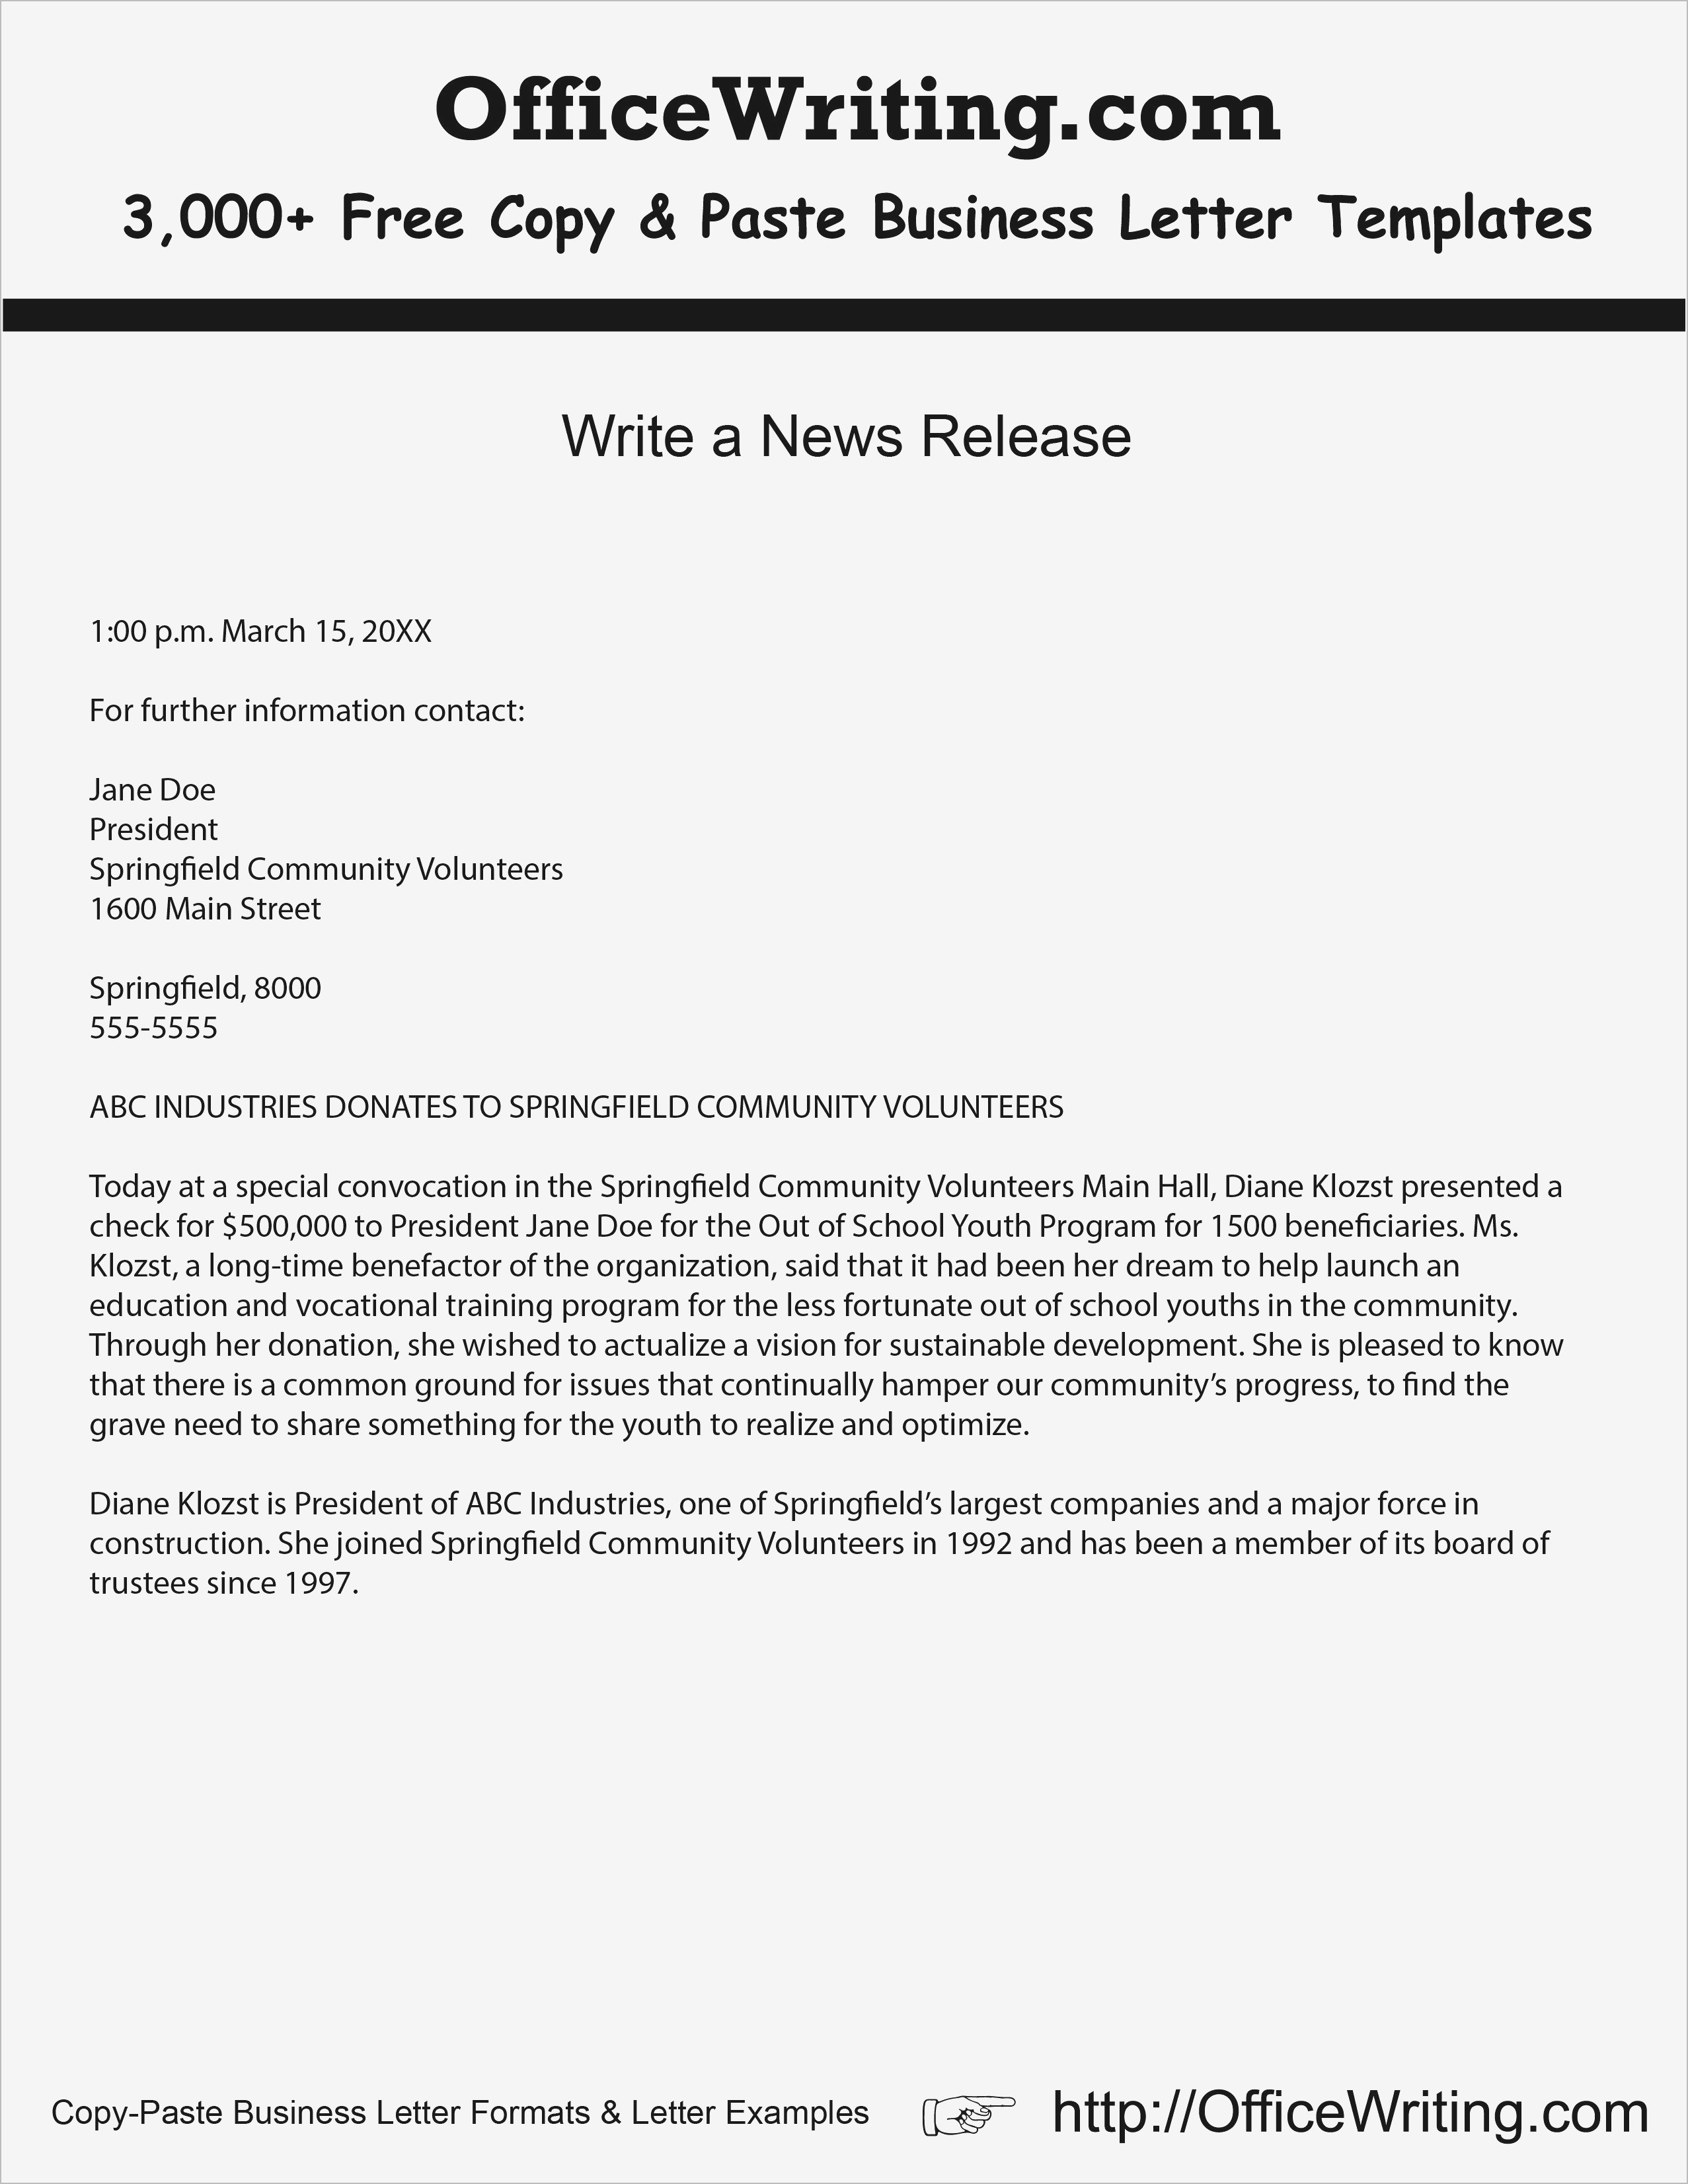 Warehouse Manager Cover Letter Template - Marketing Resume Templates Best Brand Management Cover Letter